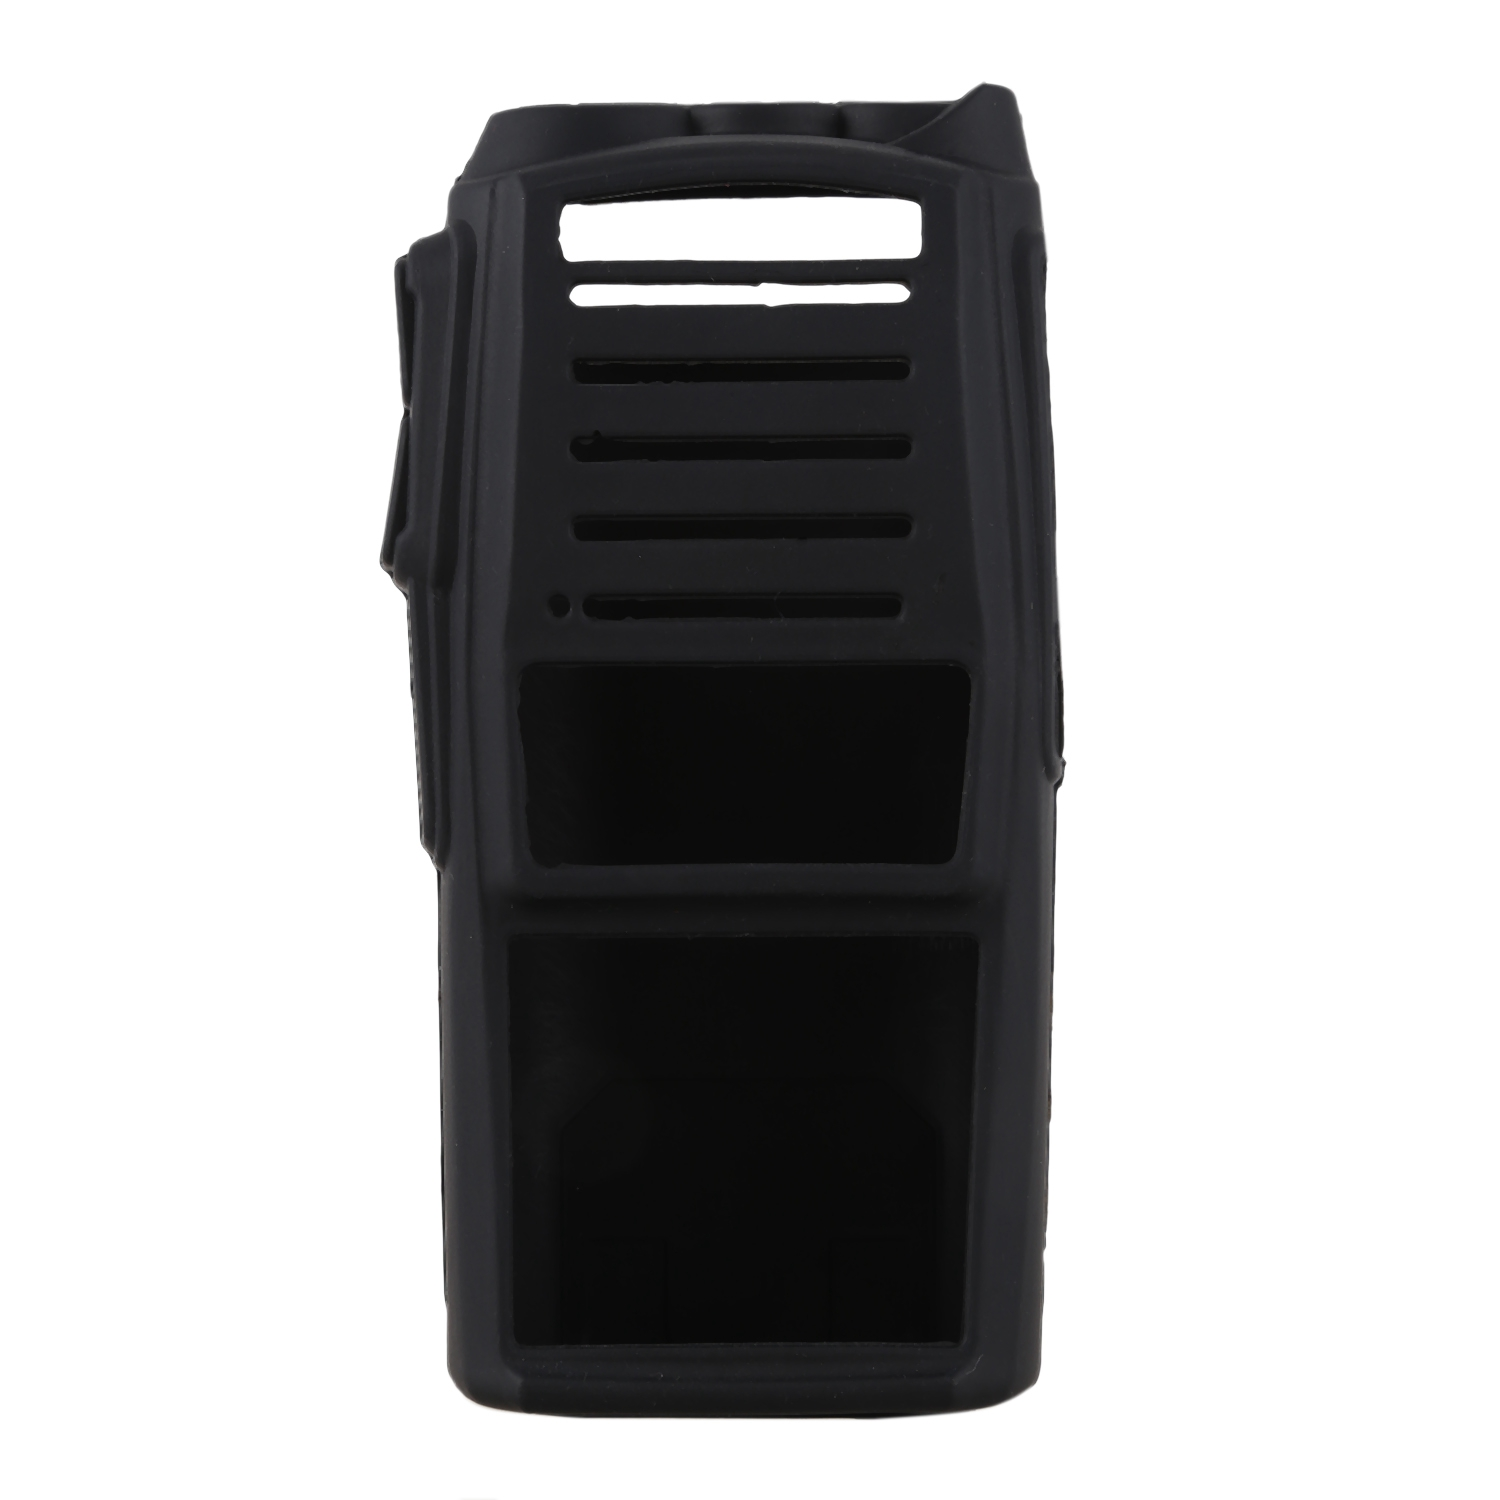 Handheld Radio Silicone Cover Protect Case For Baofeng Uv-82